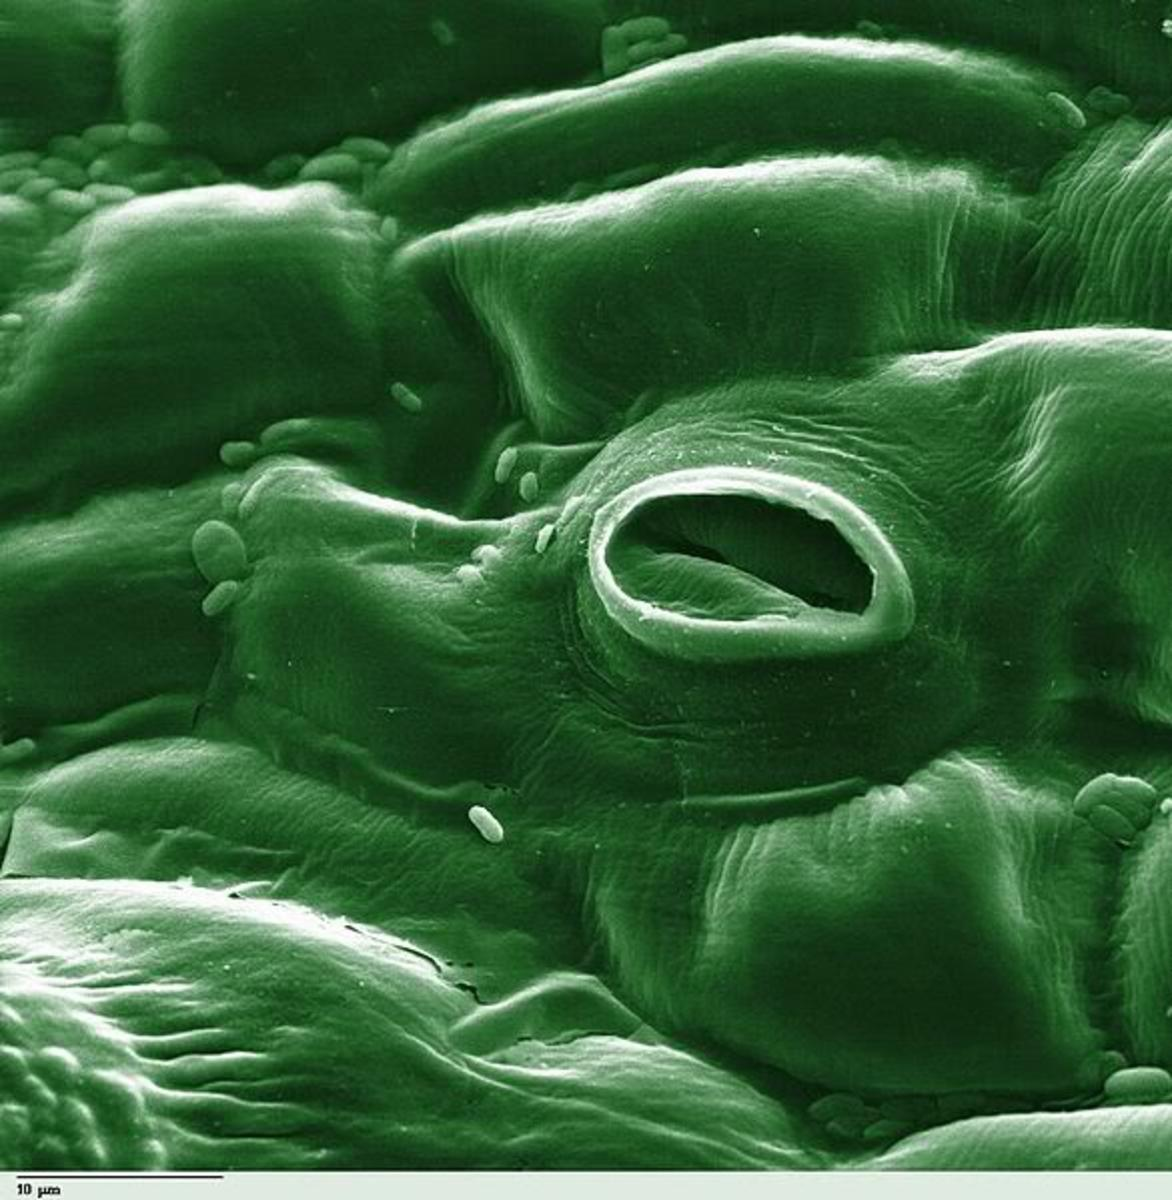 This is an image of a tomato leaf as seen through an electron microscope. The stomata is the hole you see in the leaf.